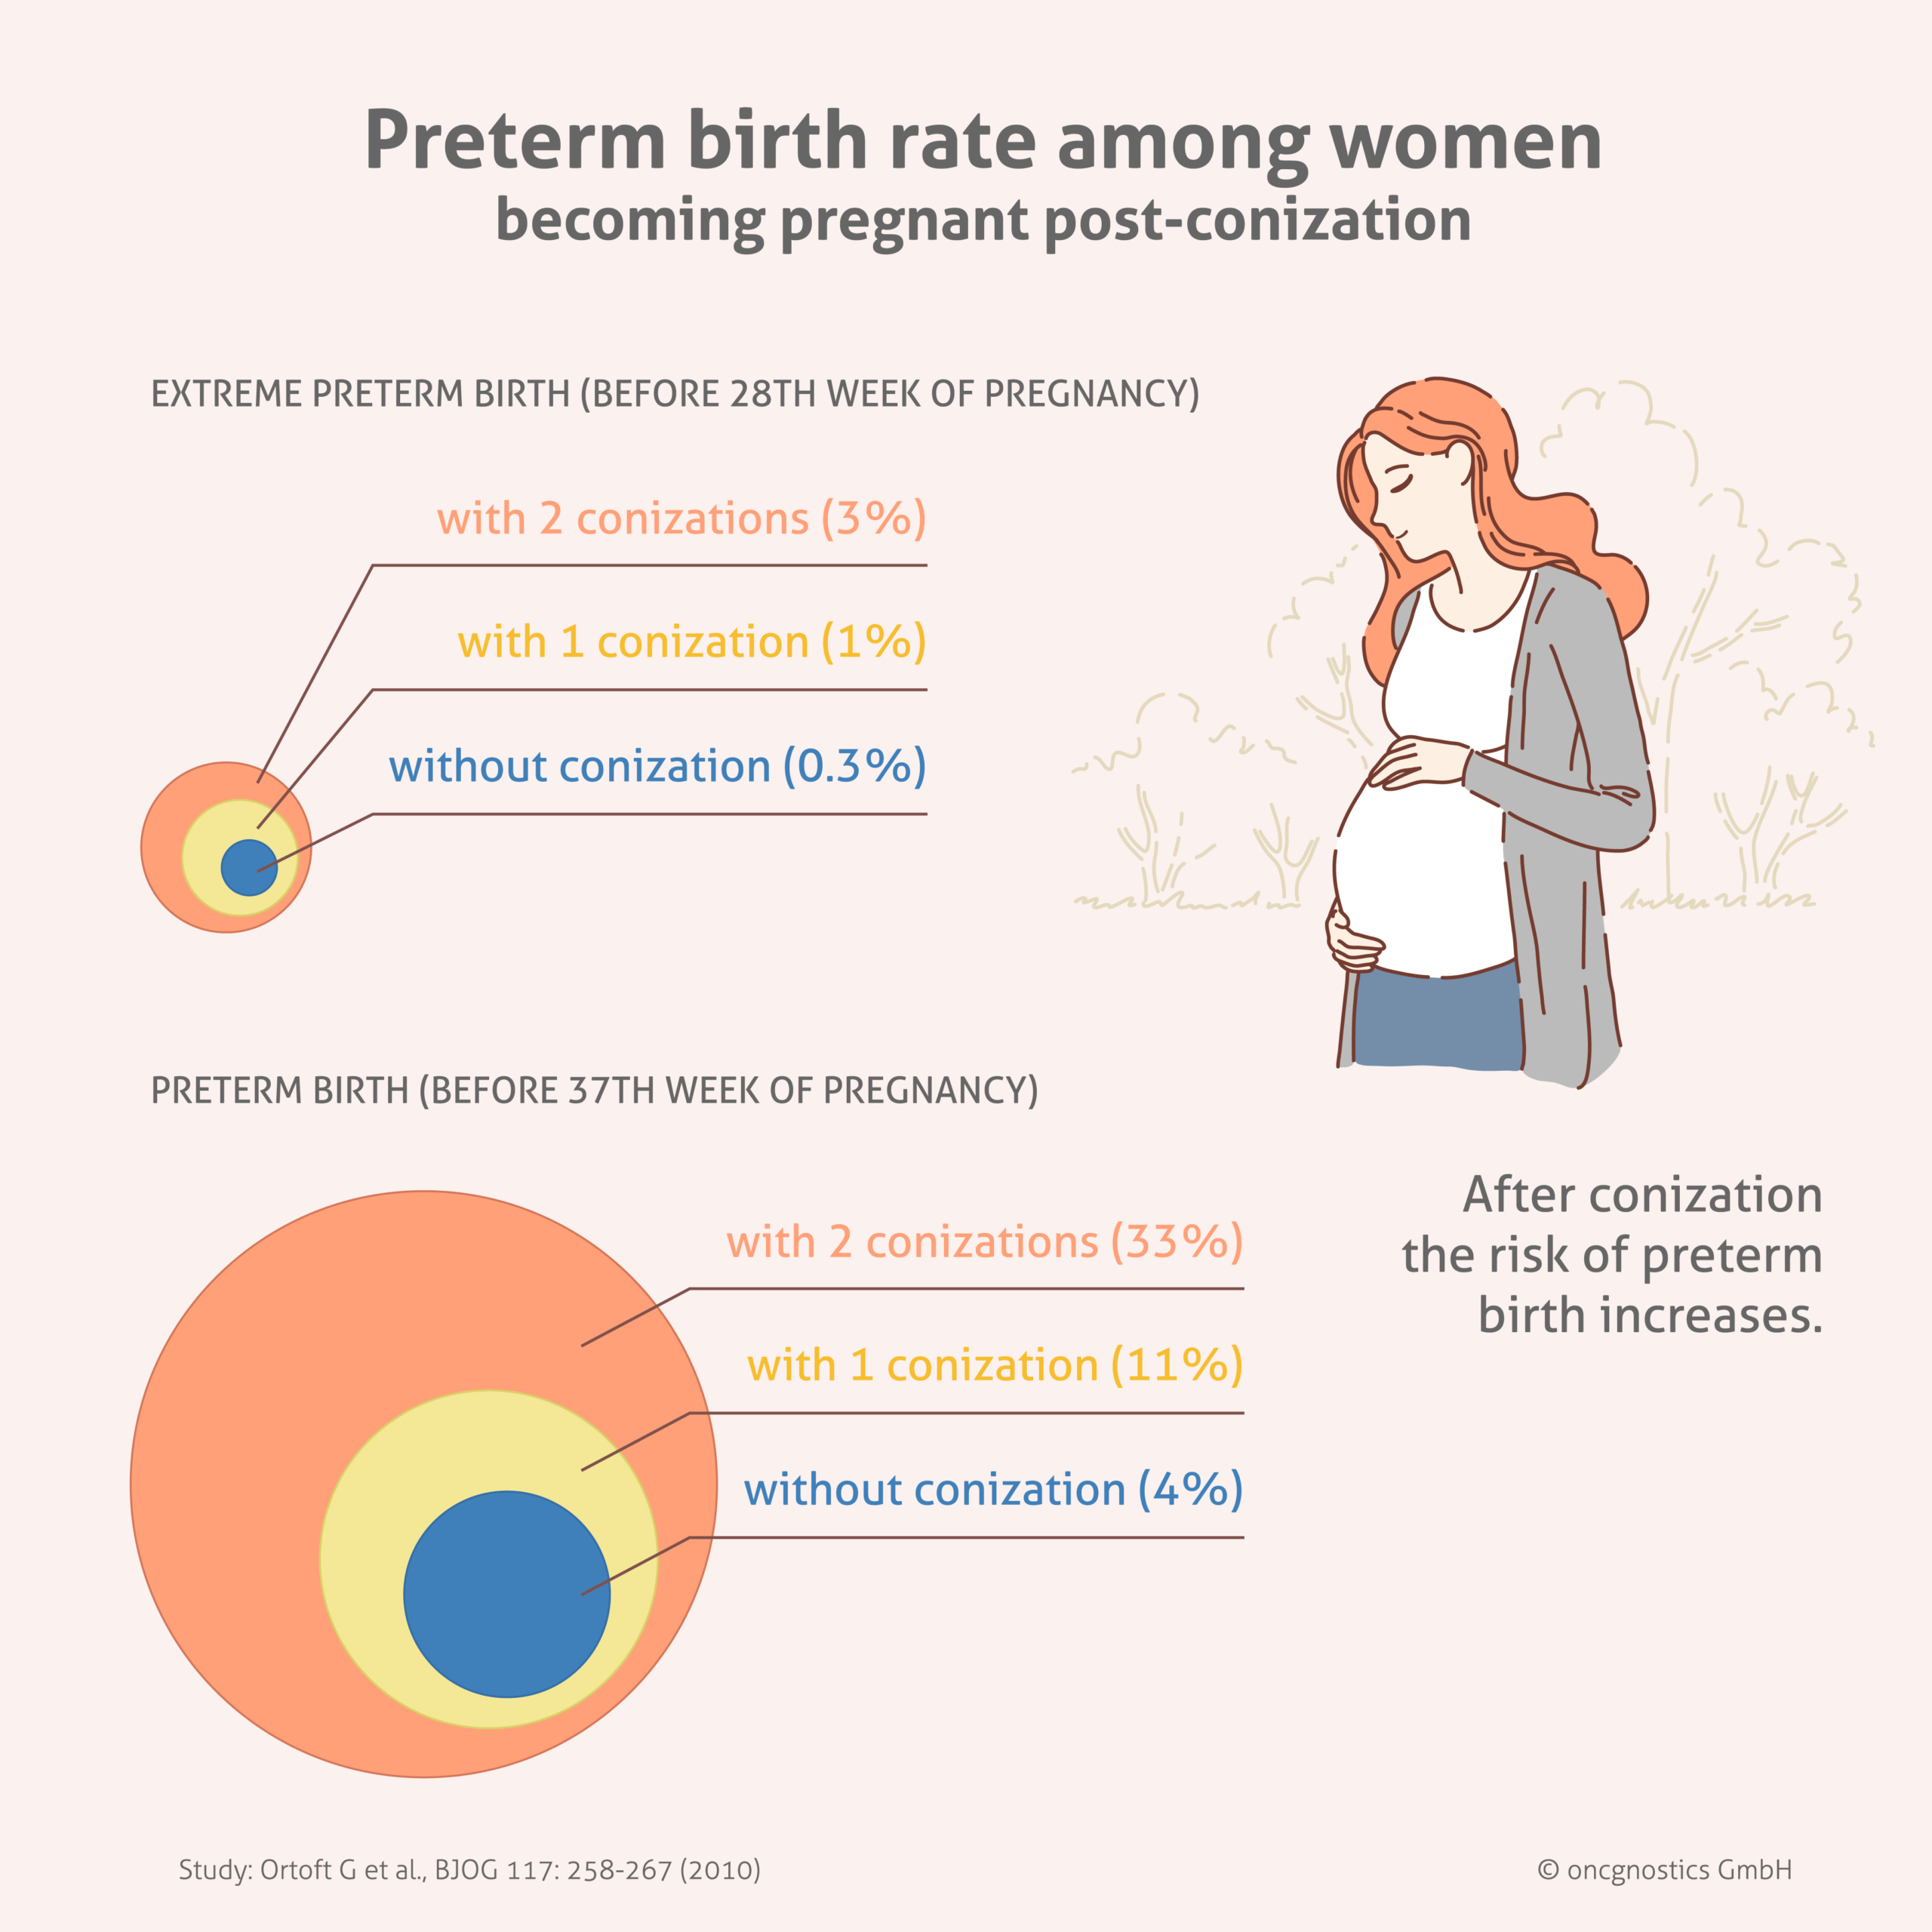 Preterm birth rate